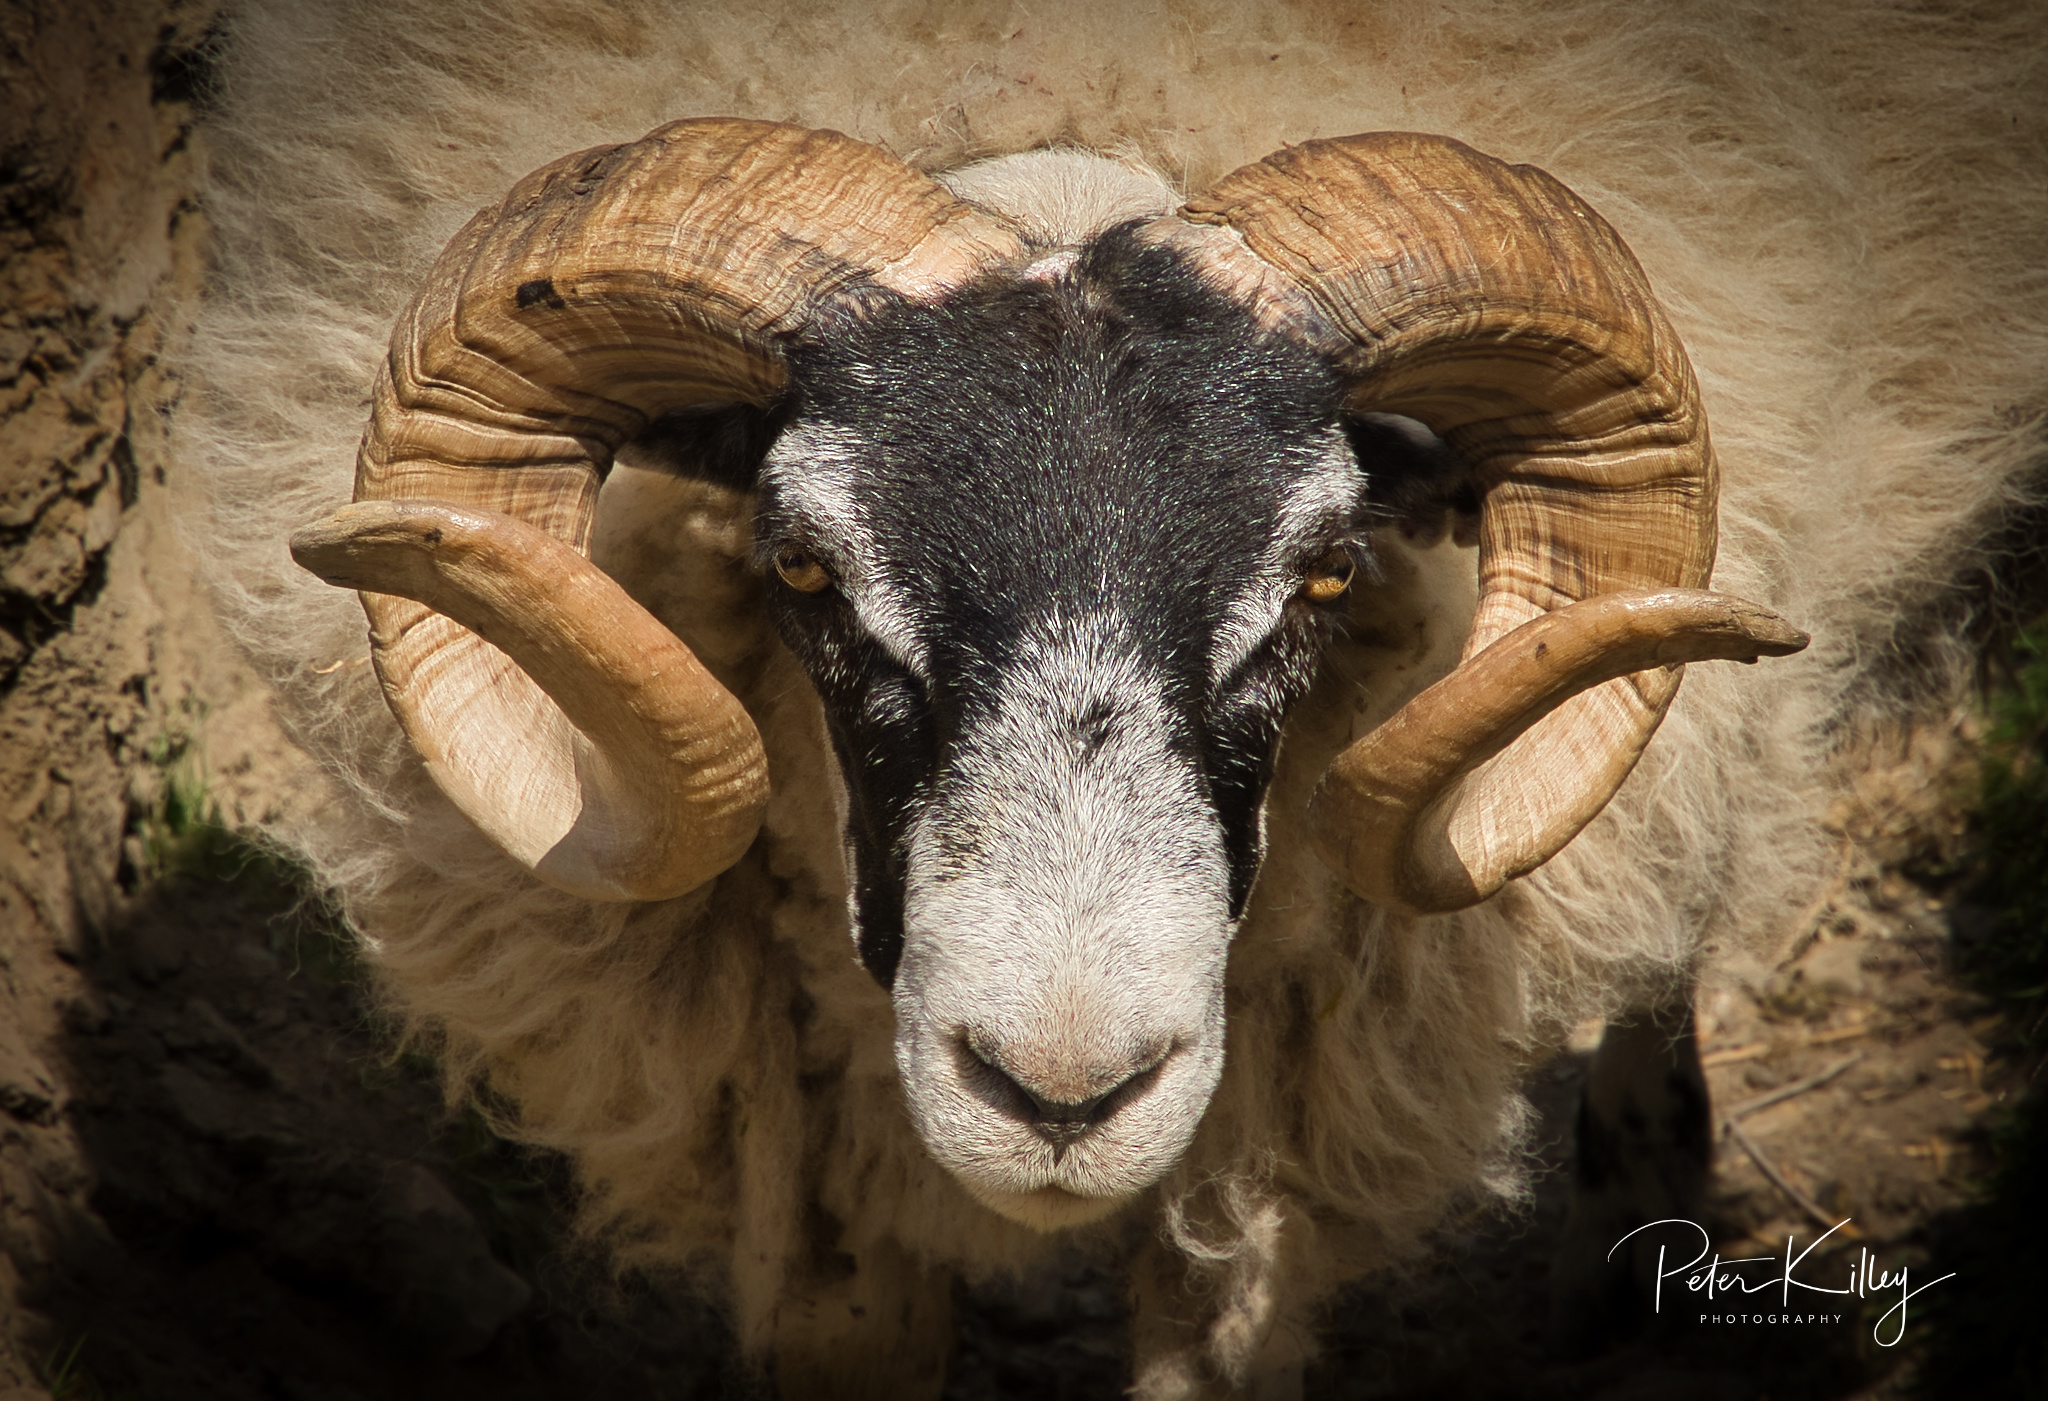 Druidale Ram - Isle of Man -  © Peter Killey - www.manxscenes.com